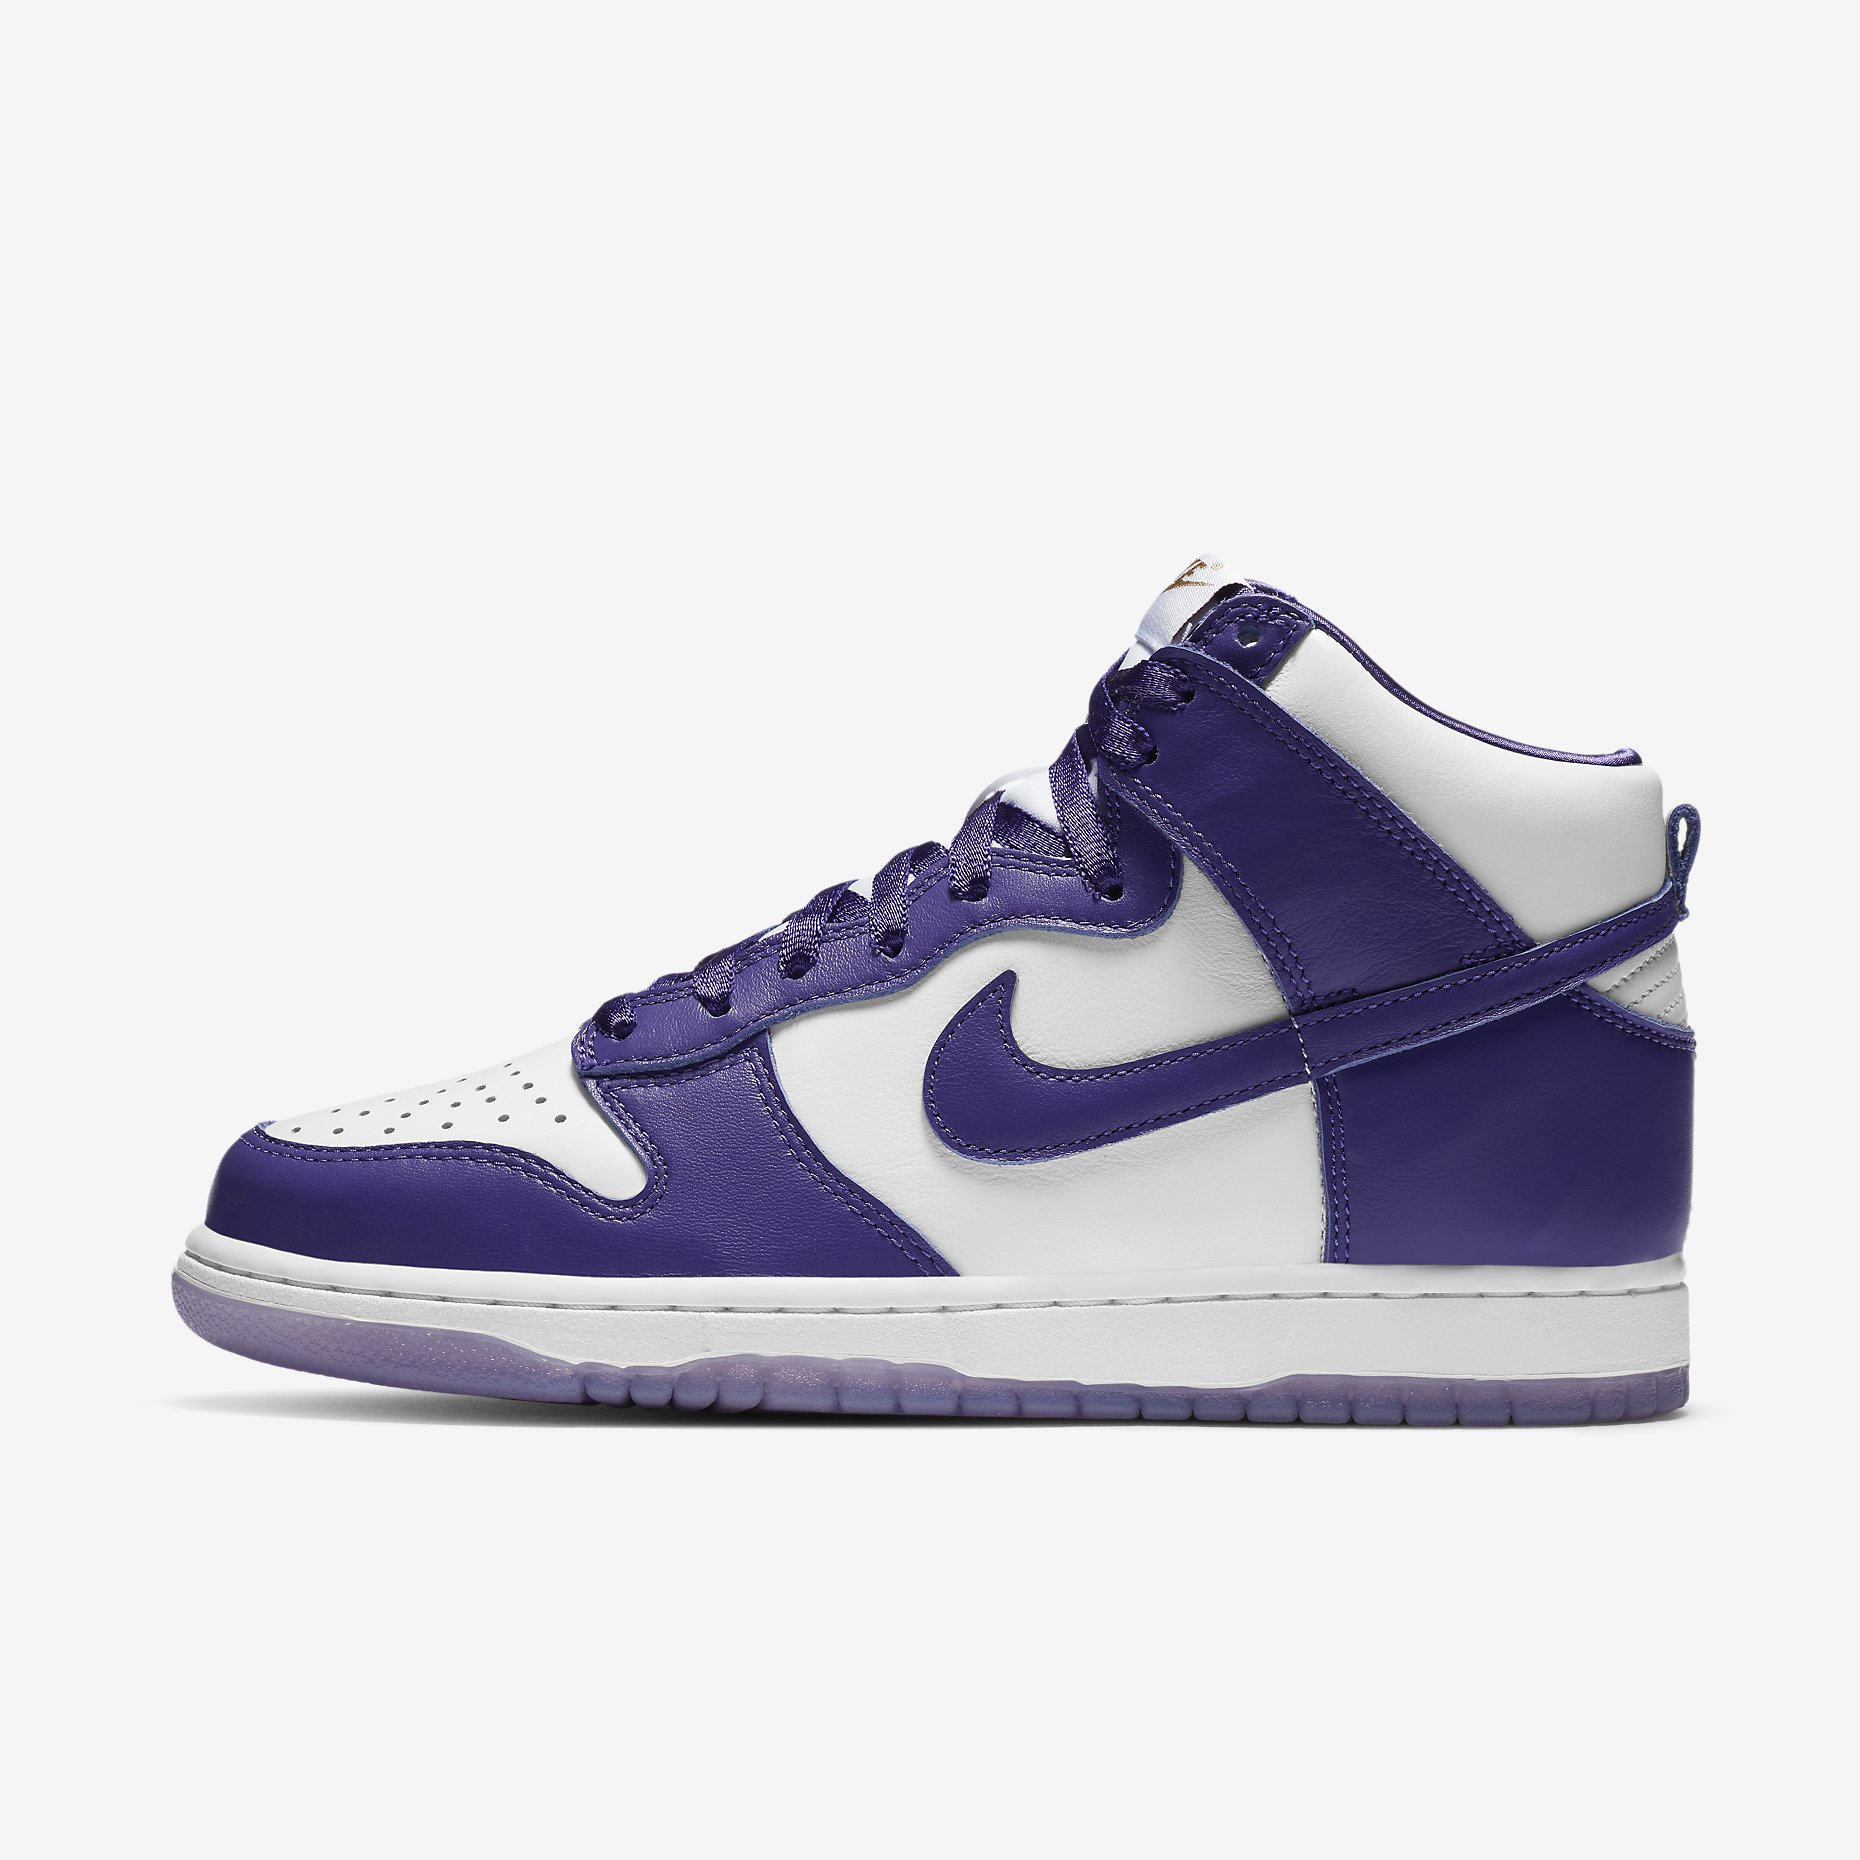 Wmns Nike Dunk High SP 'Varsity Purple'}